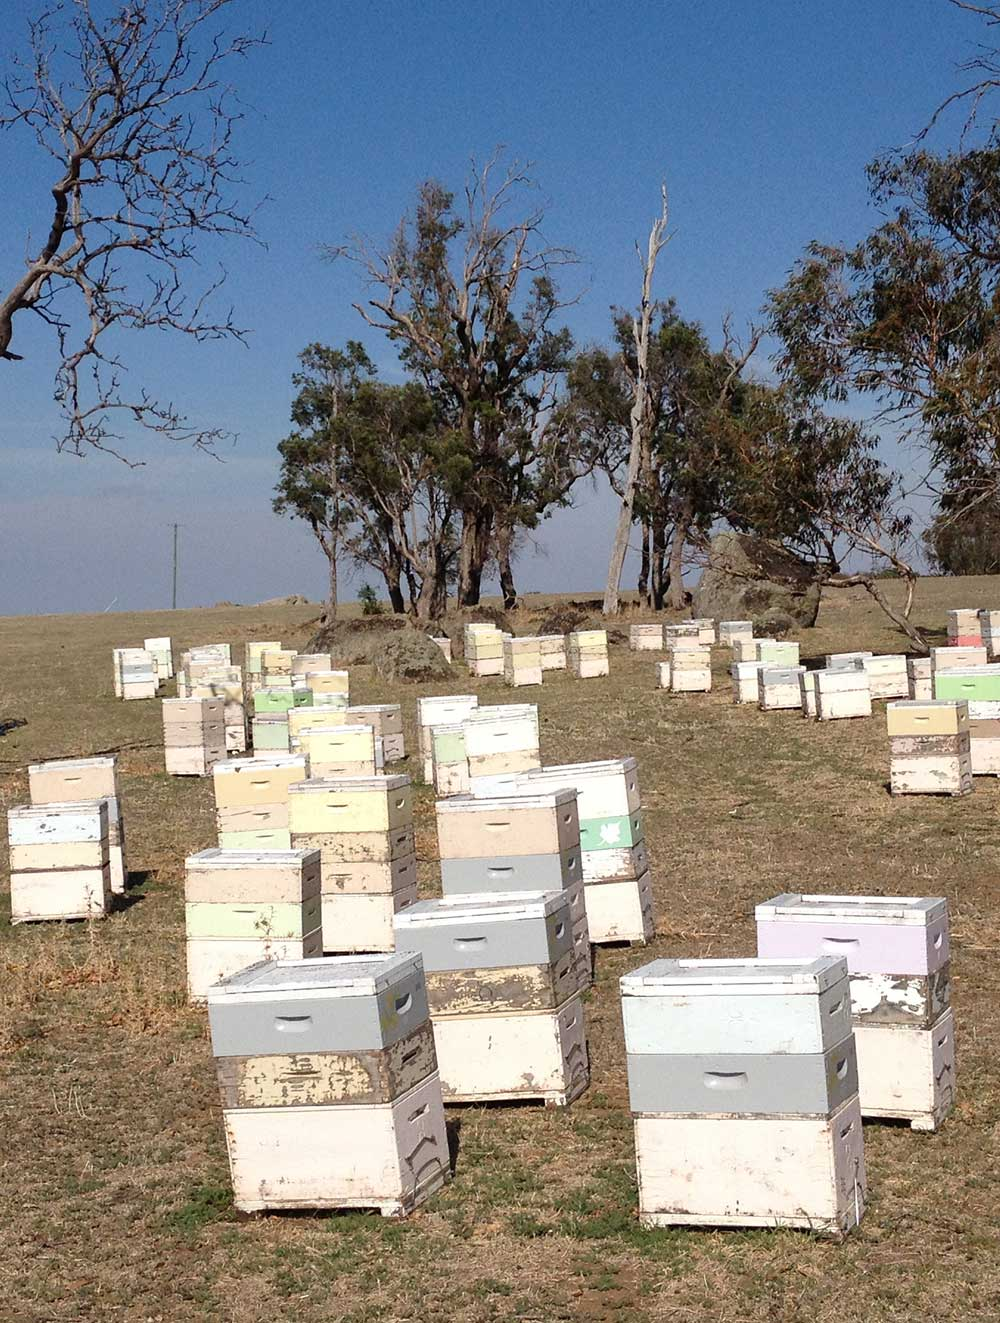 Bee hives in a paddock